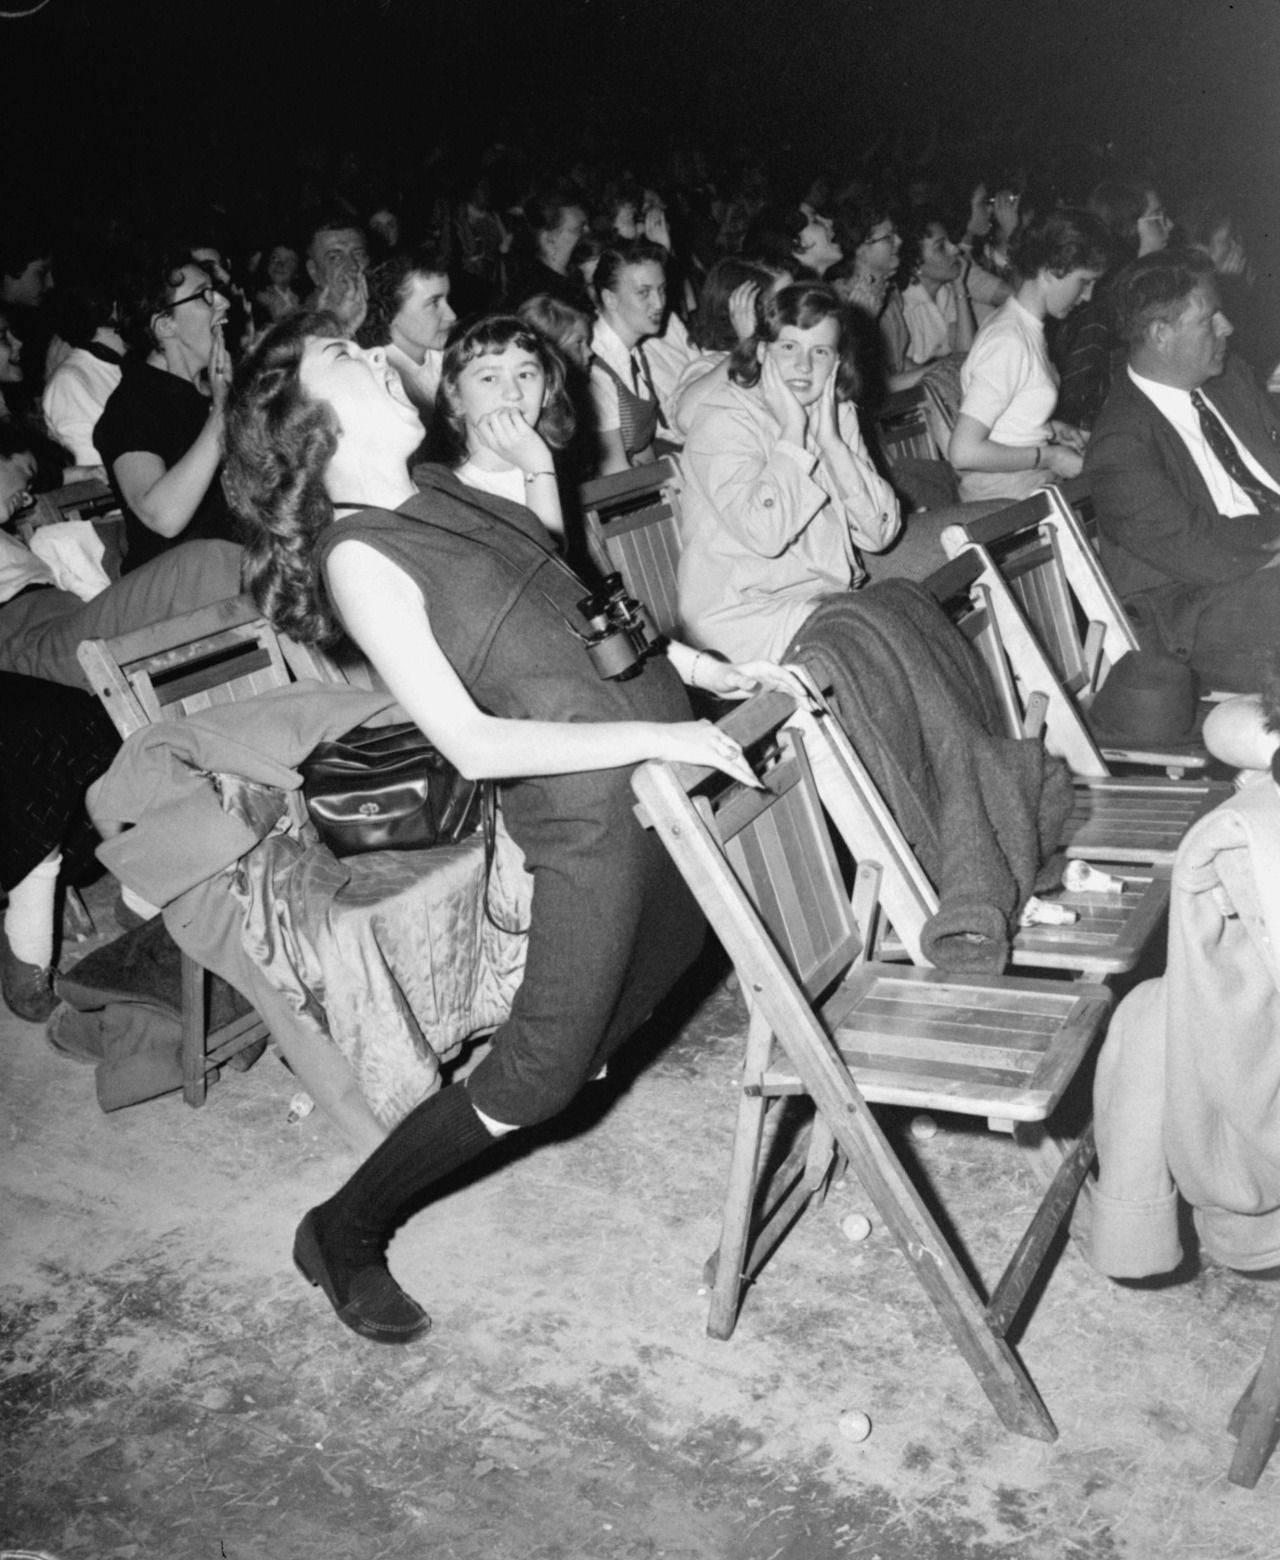 """historicaltimes: """" A teenager at an Elvis Presley concert at the Philadelphia Arena on April 6, 1957 - Read More """""""